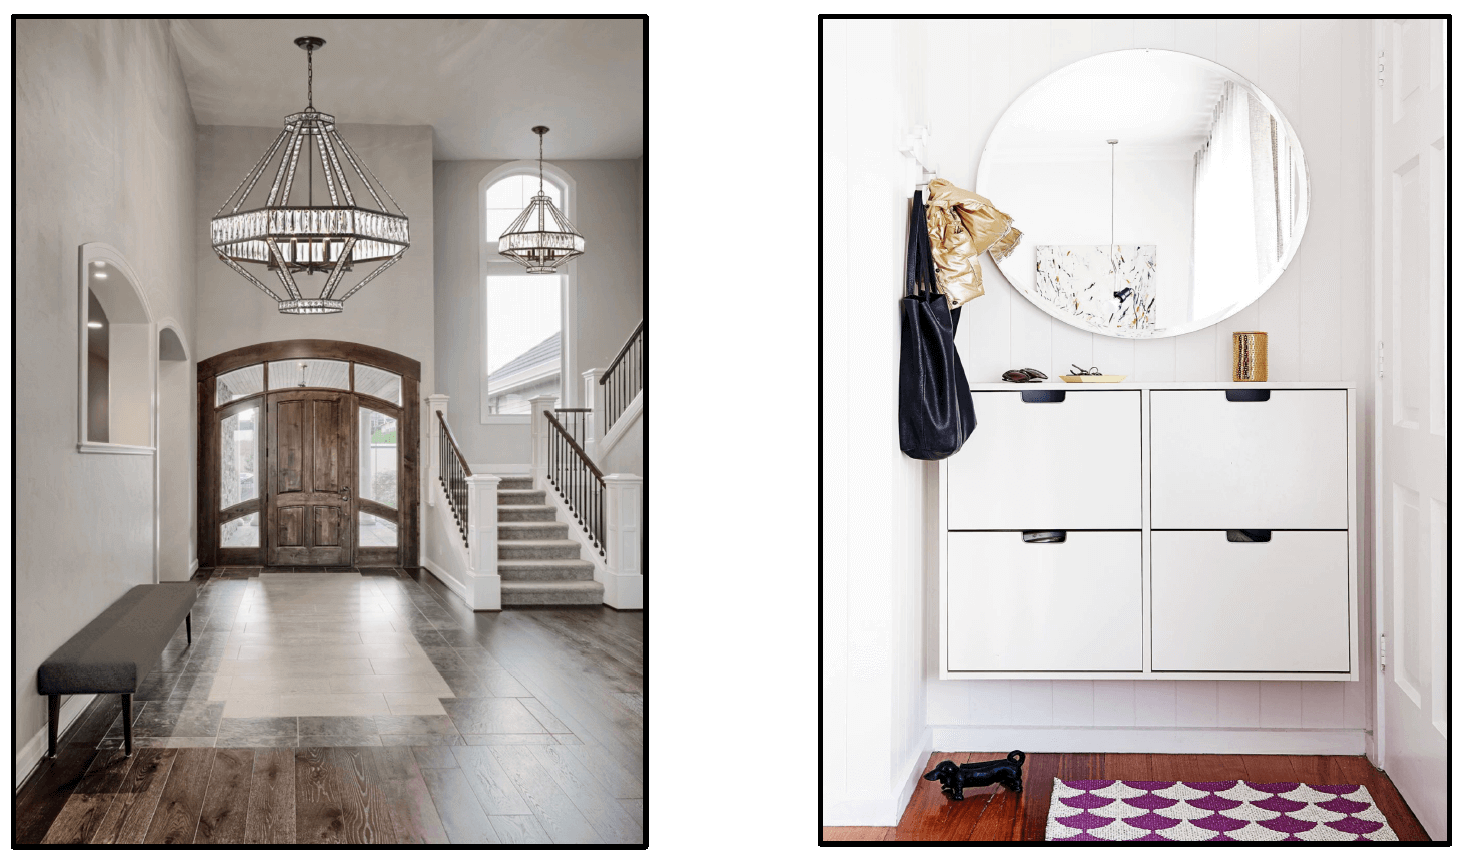 Entryway examples of large and small spaces